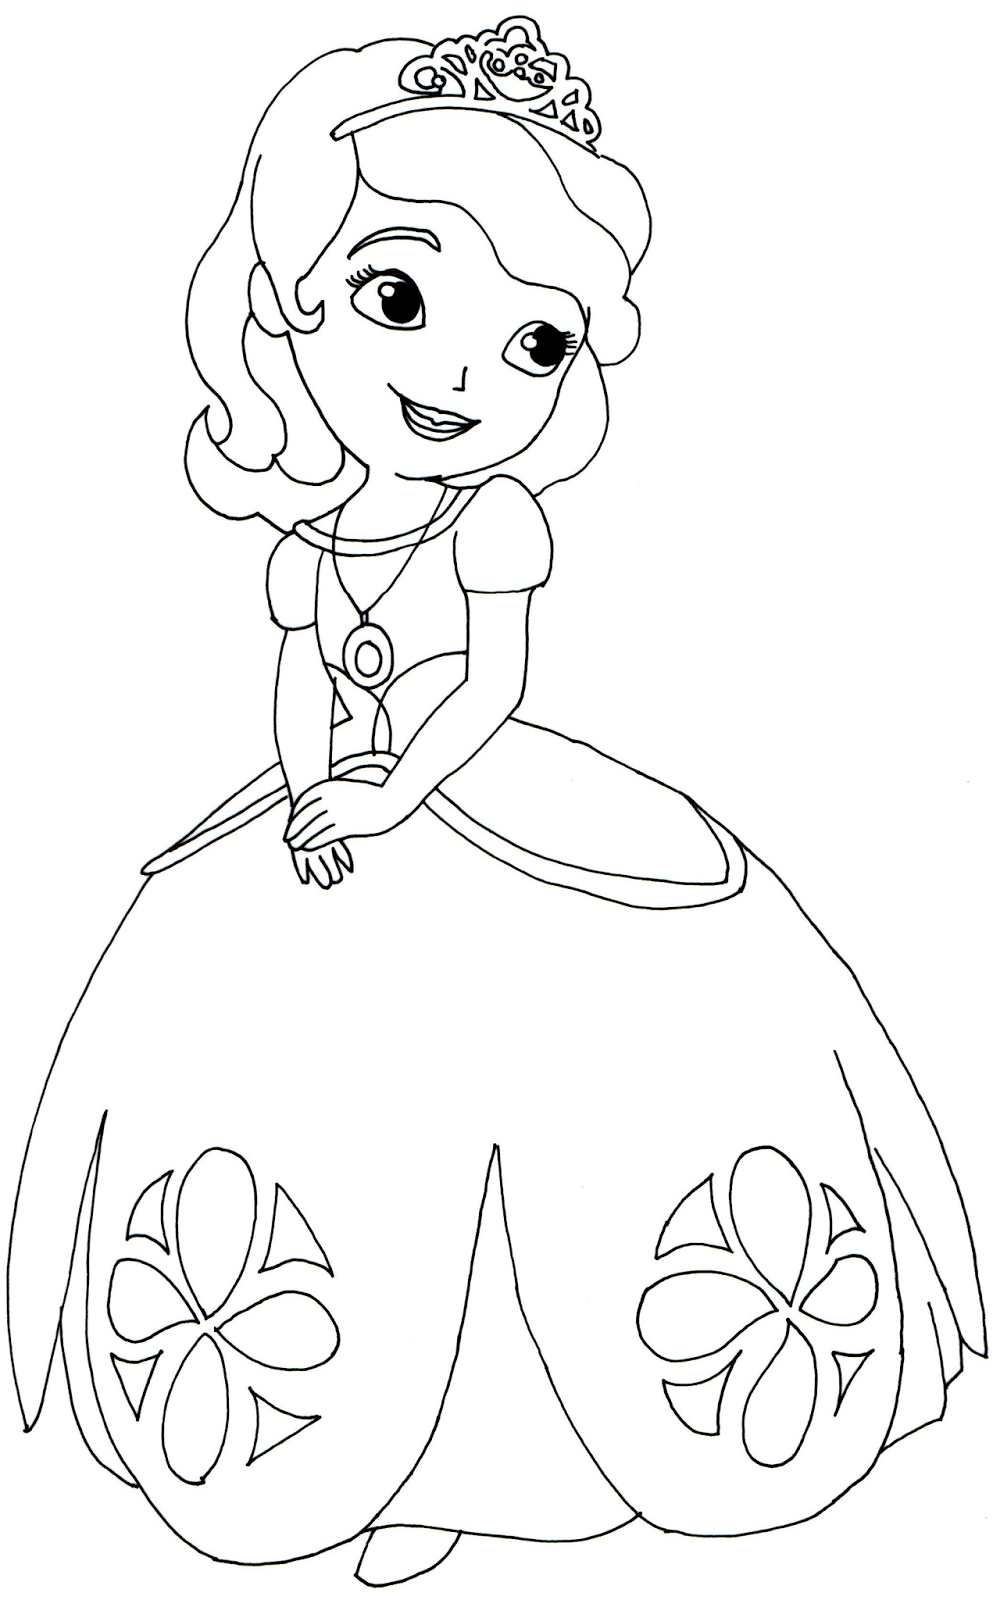 sophia coloring pages Sofia First Coloring Pages Cartoon Wallpapers | colouring  sophia coloring pages